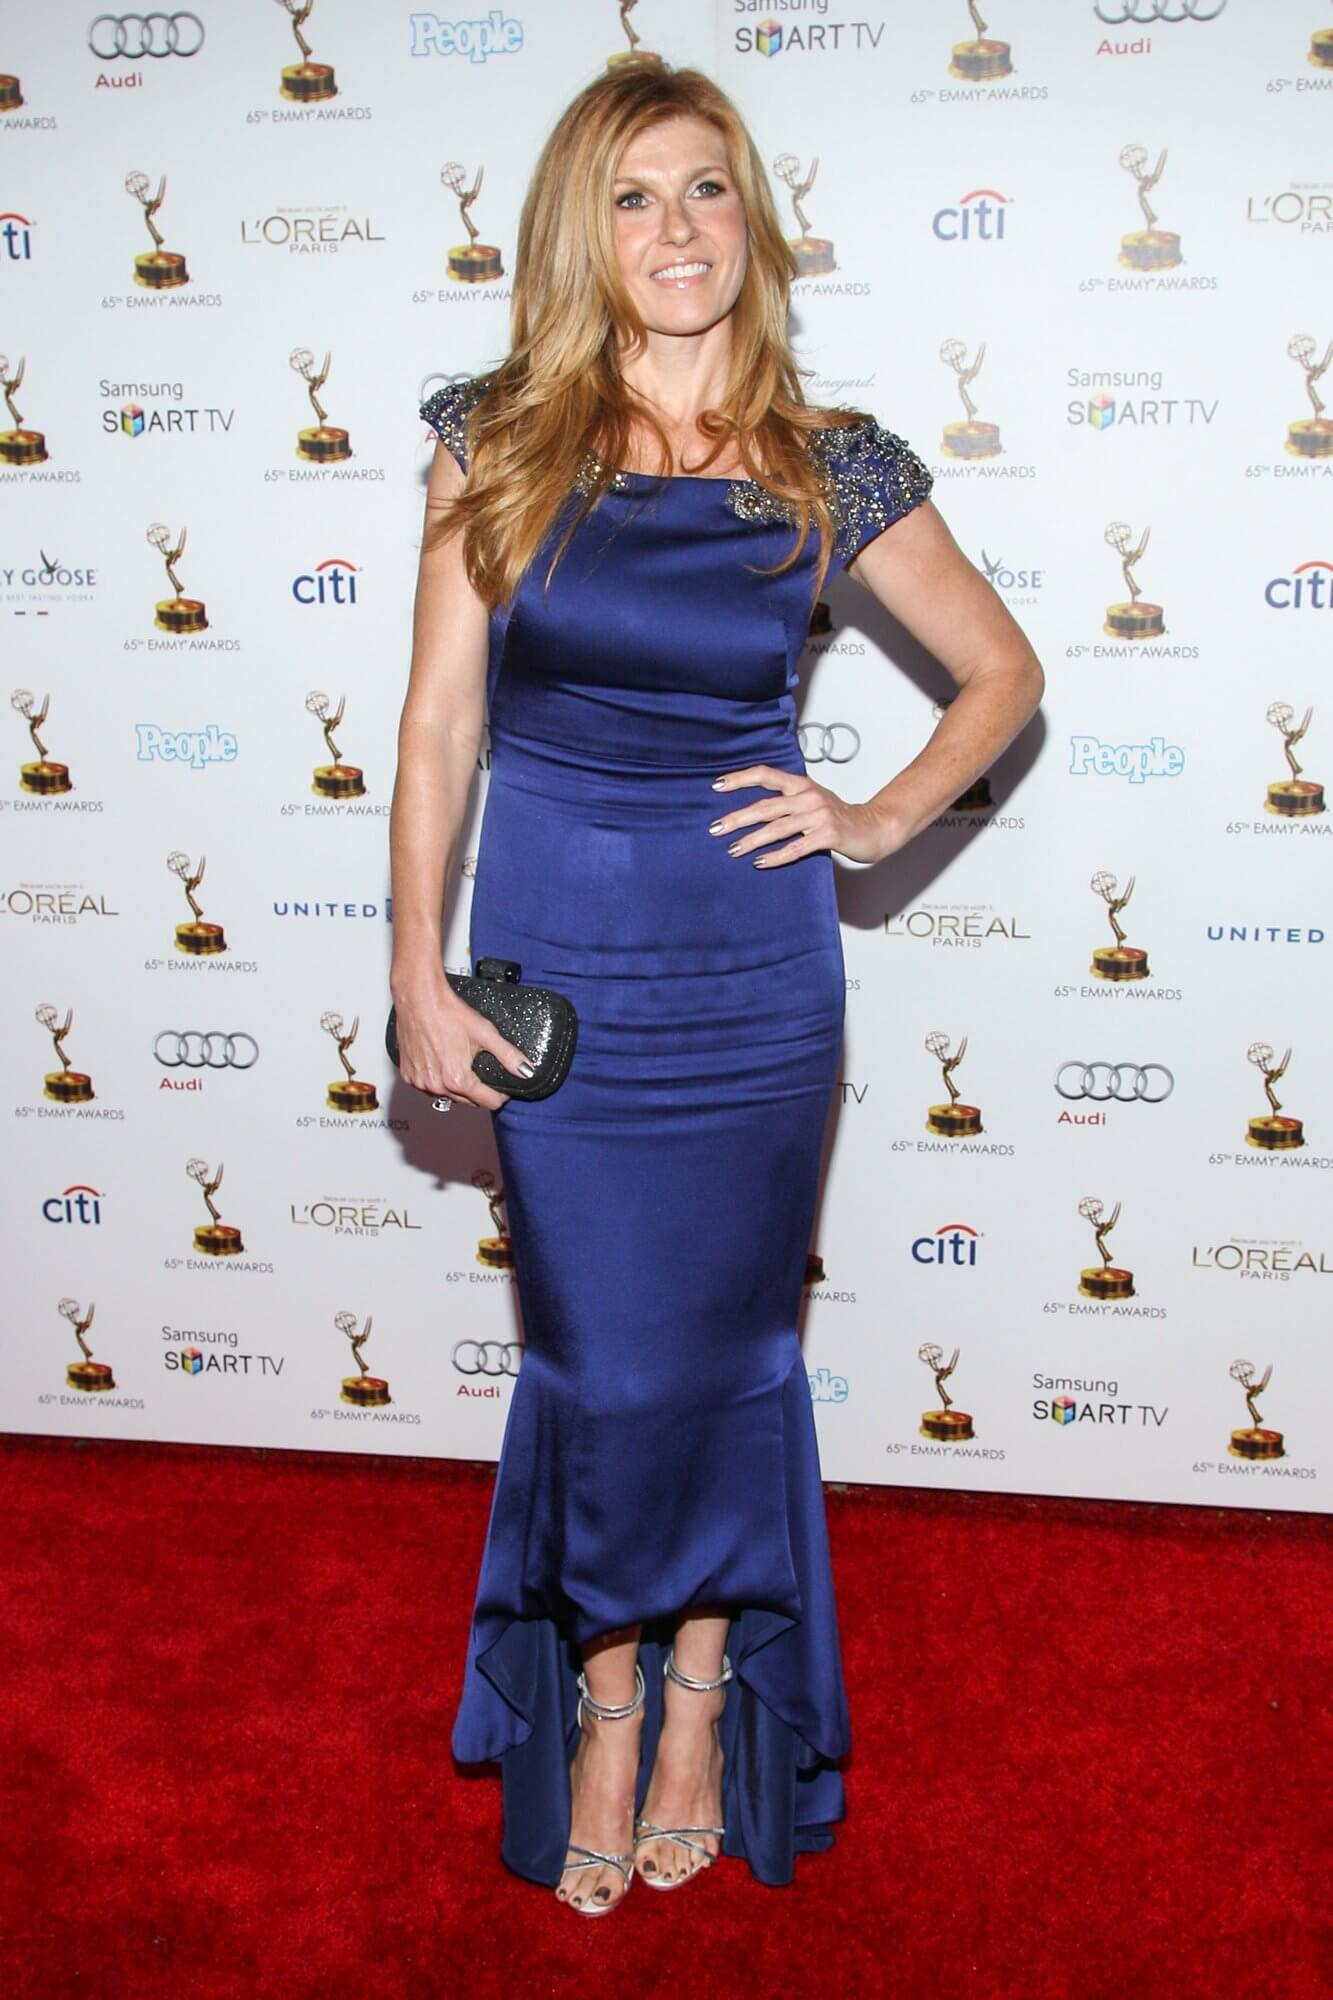 49 Hot Pictures Of Connie Britton That Are Simply Gorgeous   Best Of Comic Books